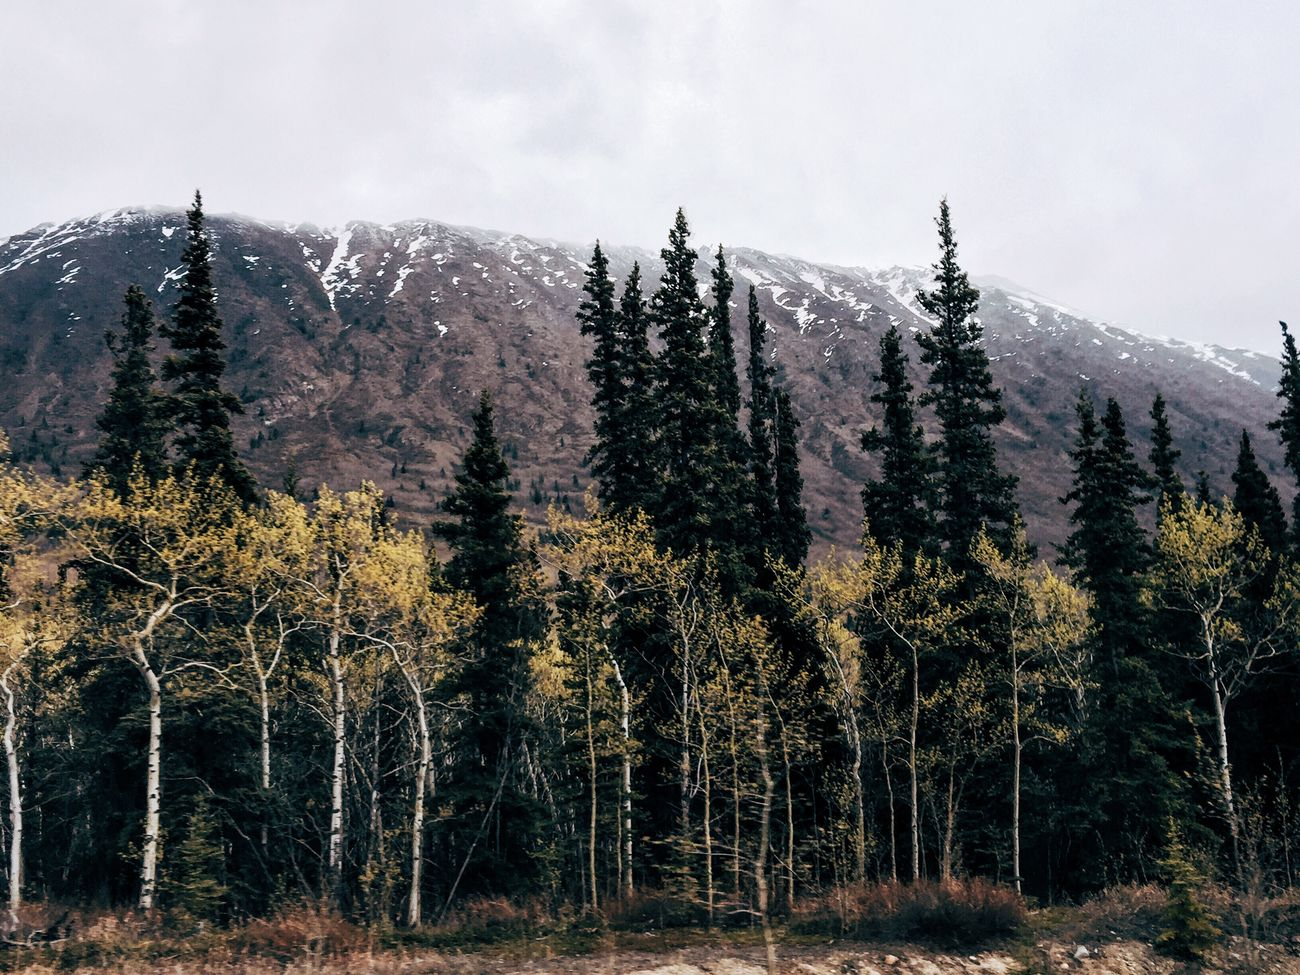 Nature's Diversities Yukon Whitehorse Canada The Photojournalist - 2016 EyeEm Awards Trees Forest Fog Explore Mountains Nature Wanderlust Tranquility Peaceful Eyeem Philippines Eyeem Canada Feel The Journey Original Experiences